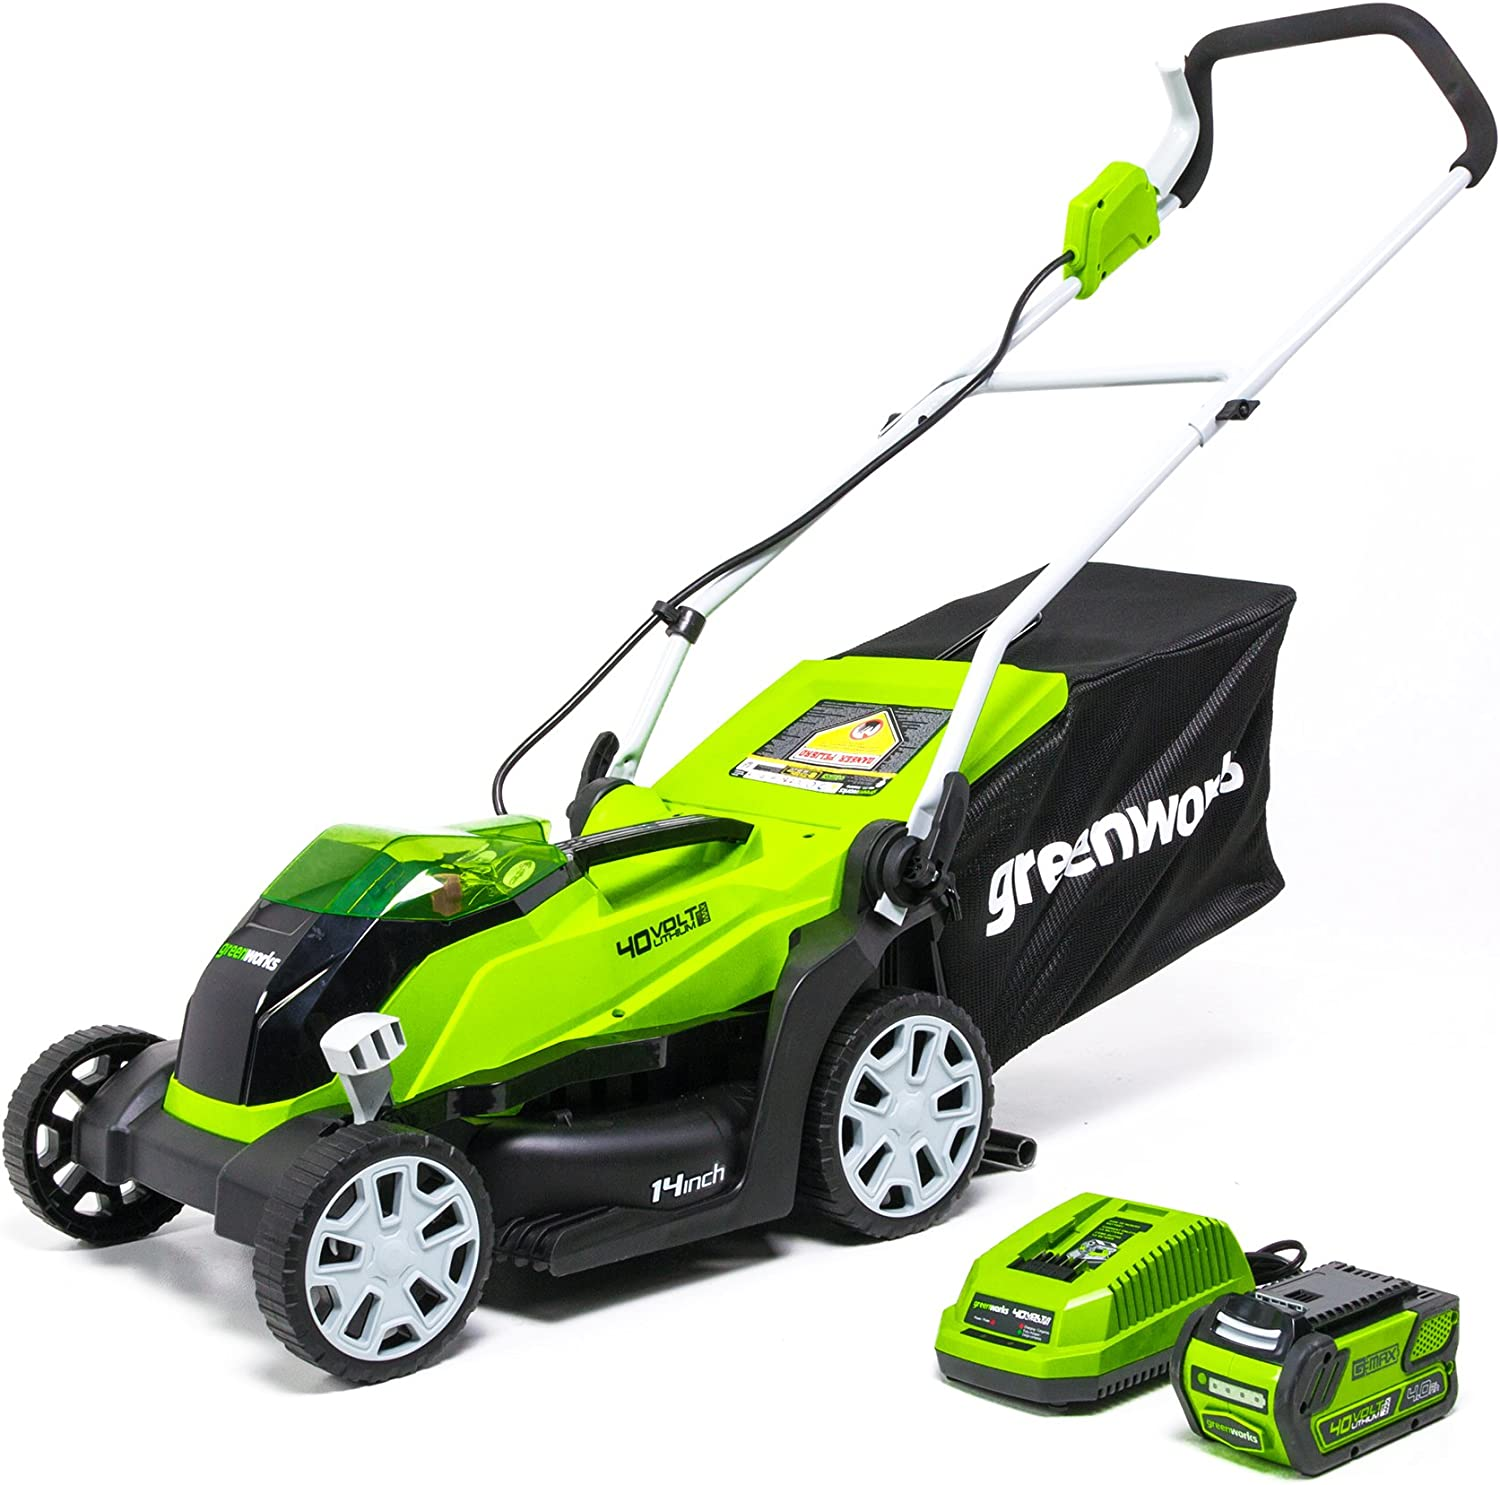 Greenworks MO40B410 Cordless Lawn Mower greenworks mower review